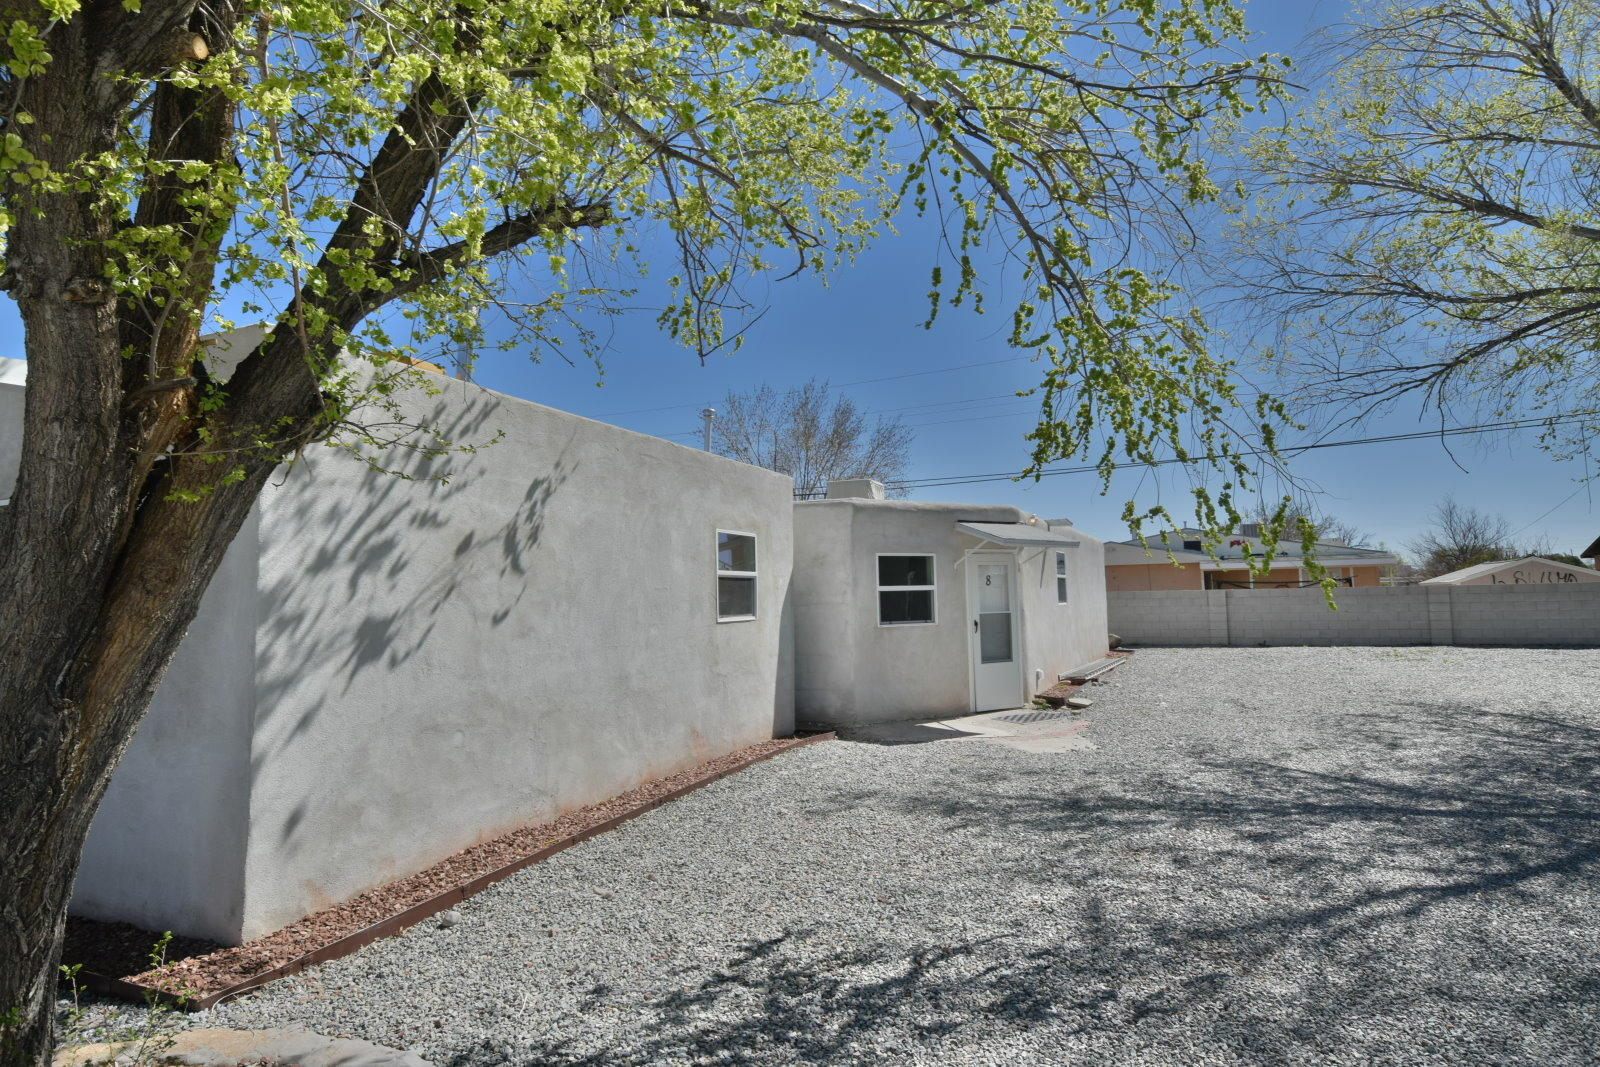 4409 9th NW, Albuquerque, NM 87102 - Albuquerque, NM real estate listing